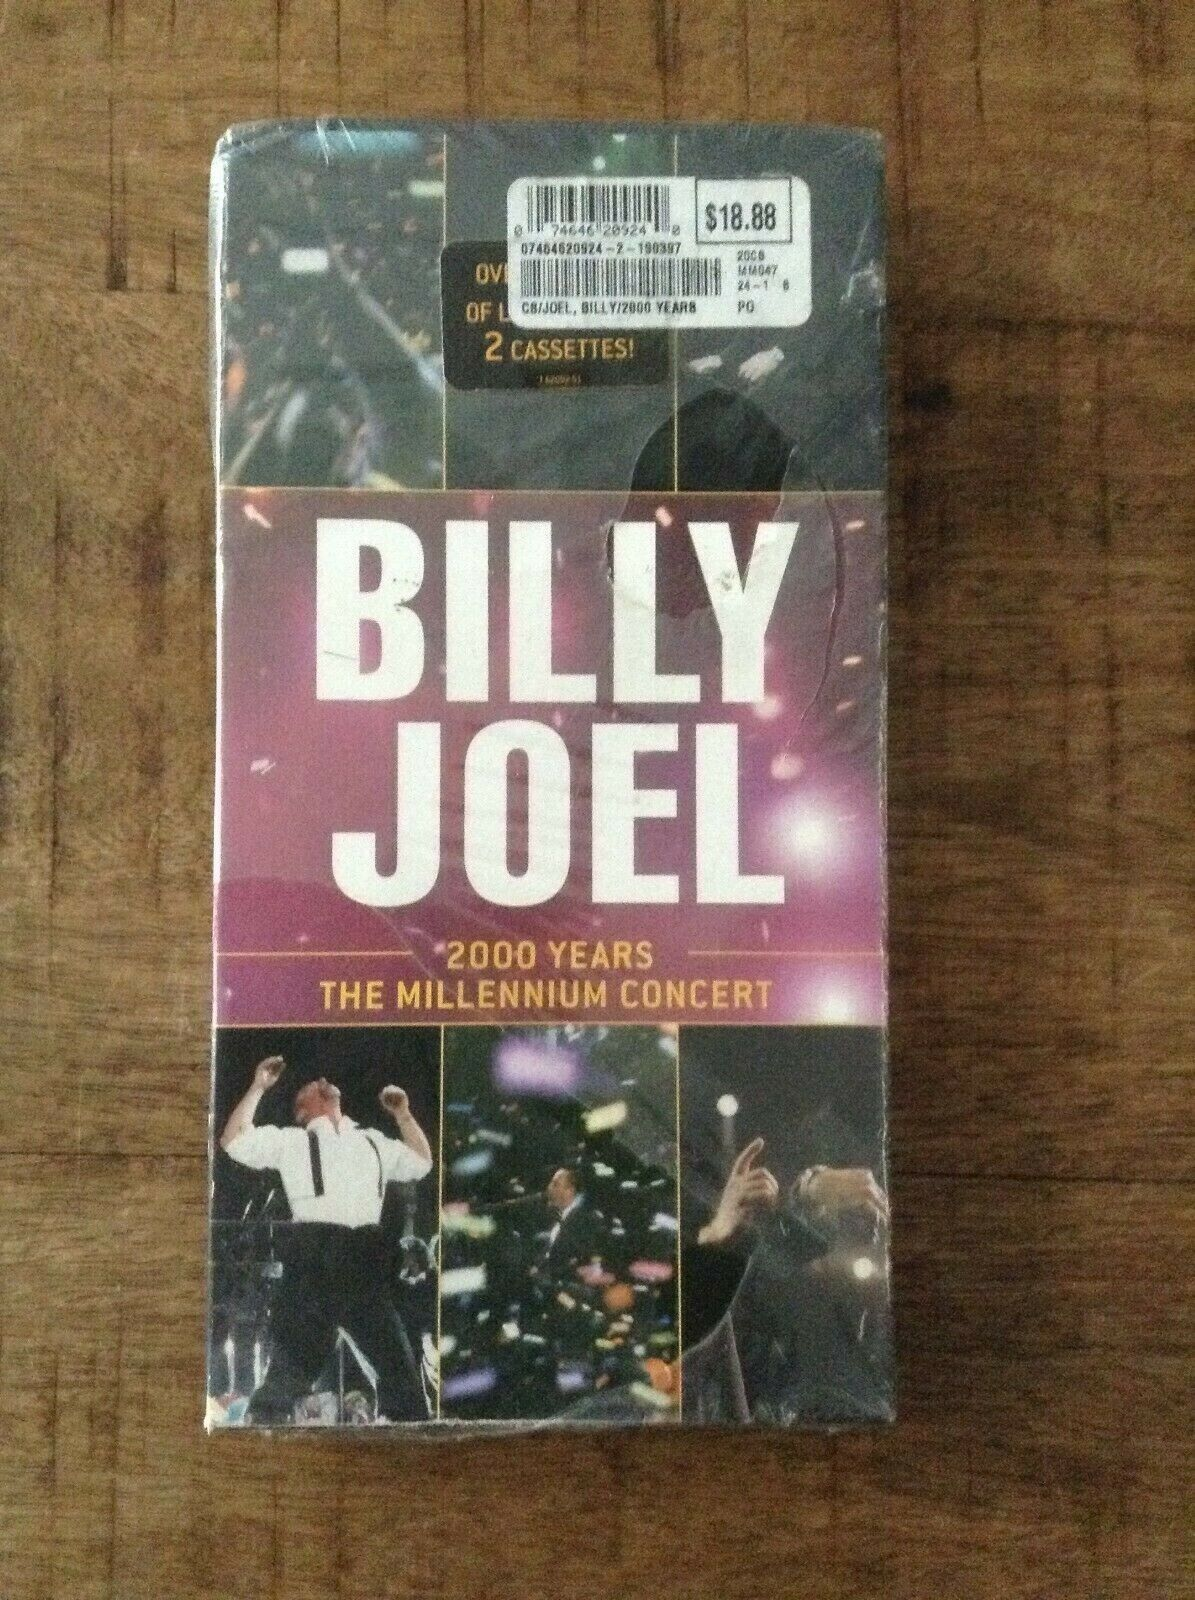 Billy Joel 2000 Years The Millennium Concert 2 Cassettes NEW SEALED LONGBOX - $9.99